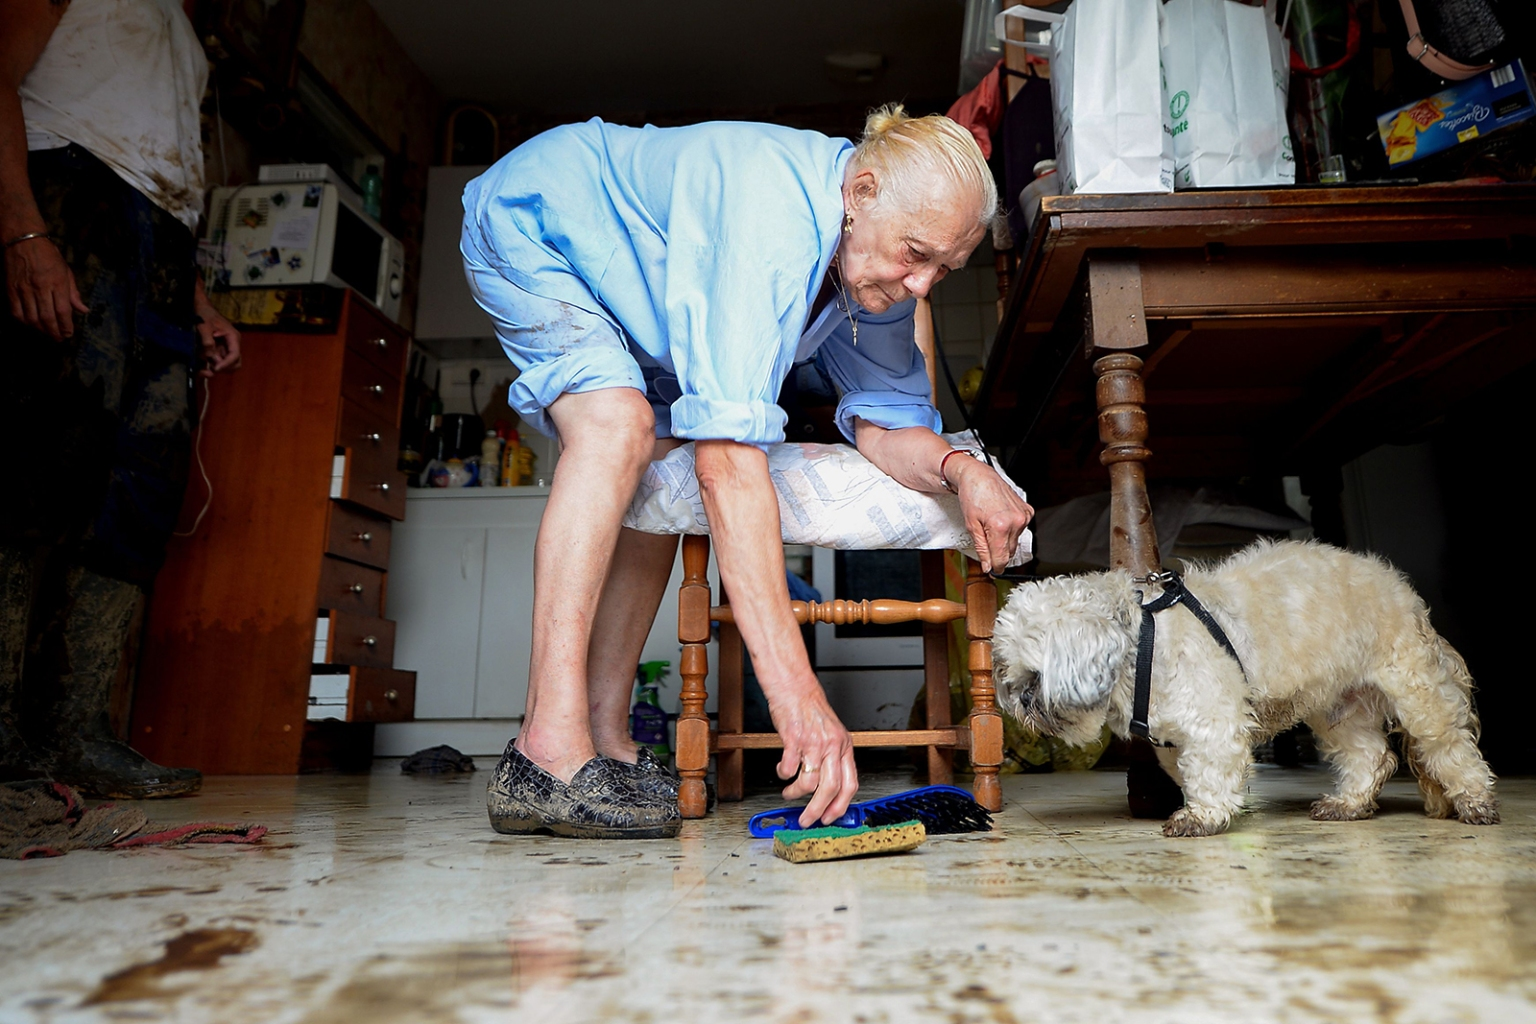 A woman cleans her house following heavy storms that brought damaing floods in the northwestern French city of Lisieux on June 25. JEAN-FRANCOIS MONIER/AFP/Getty Images